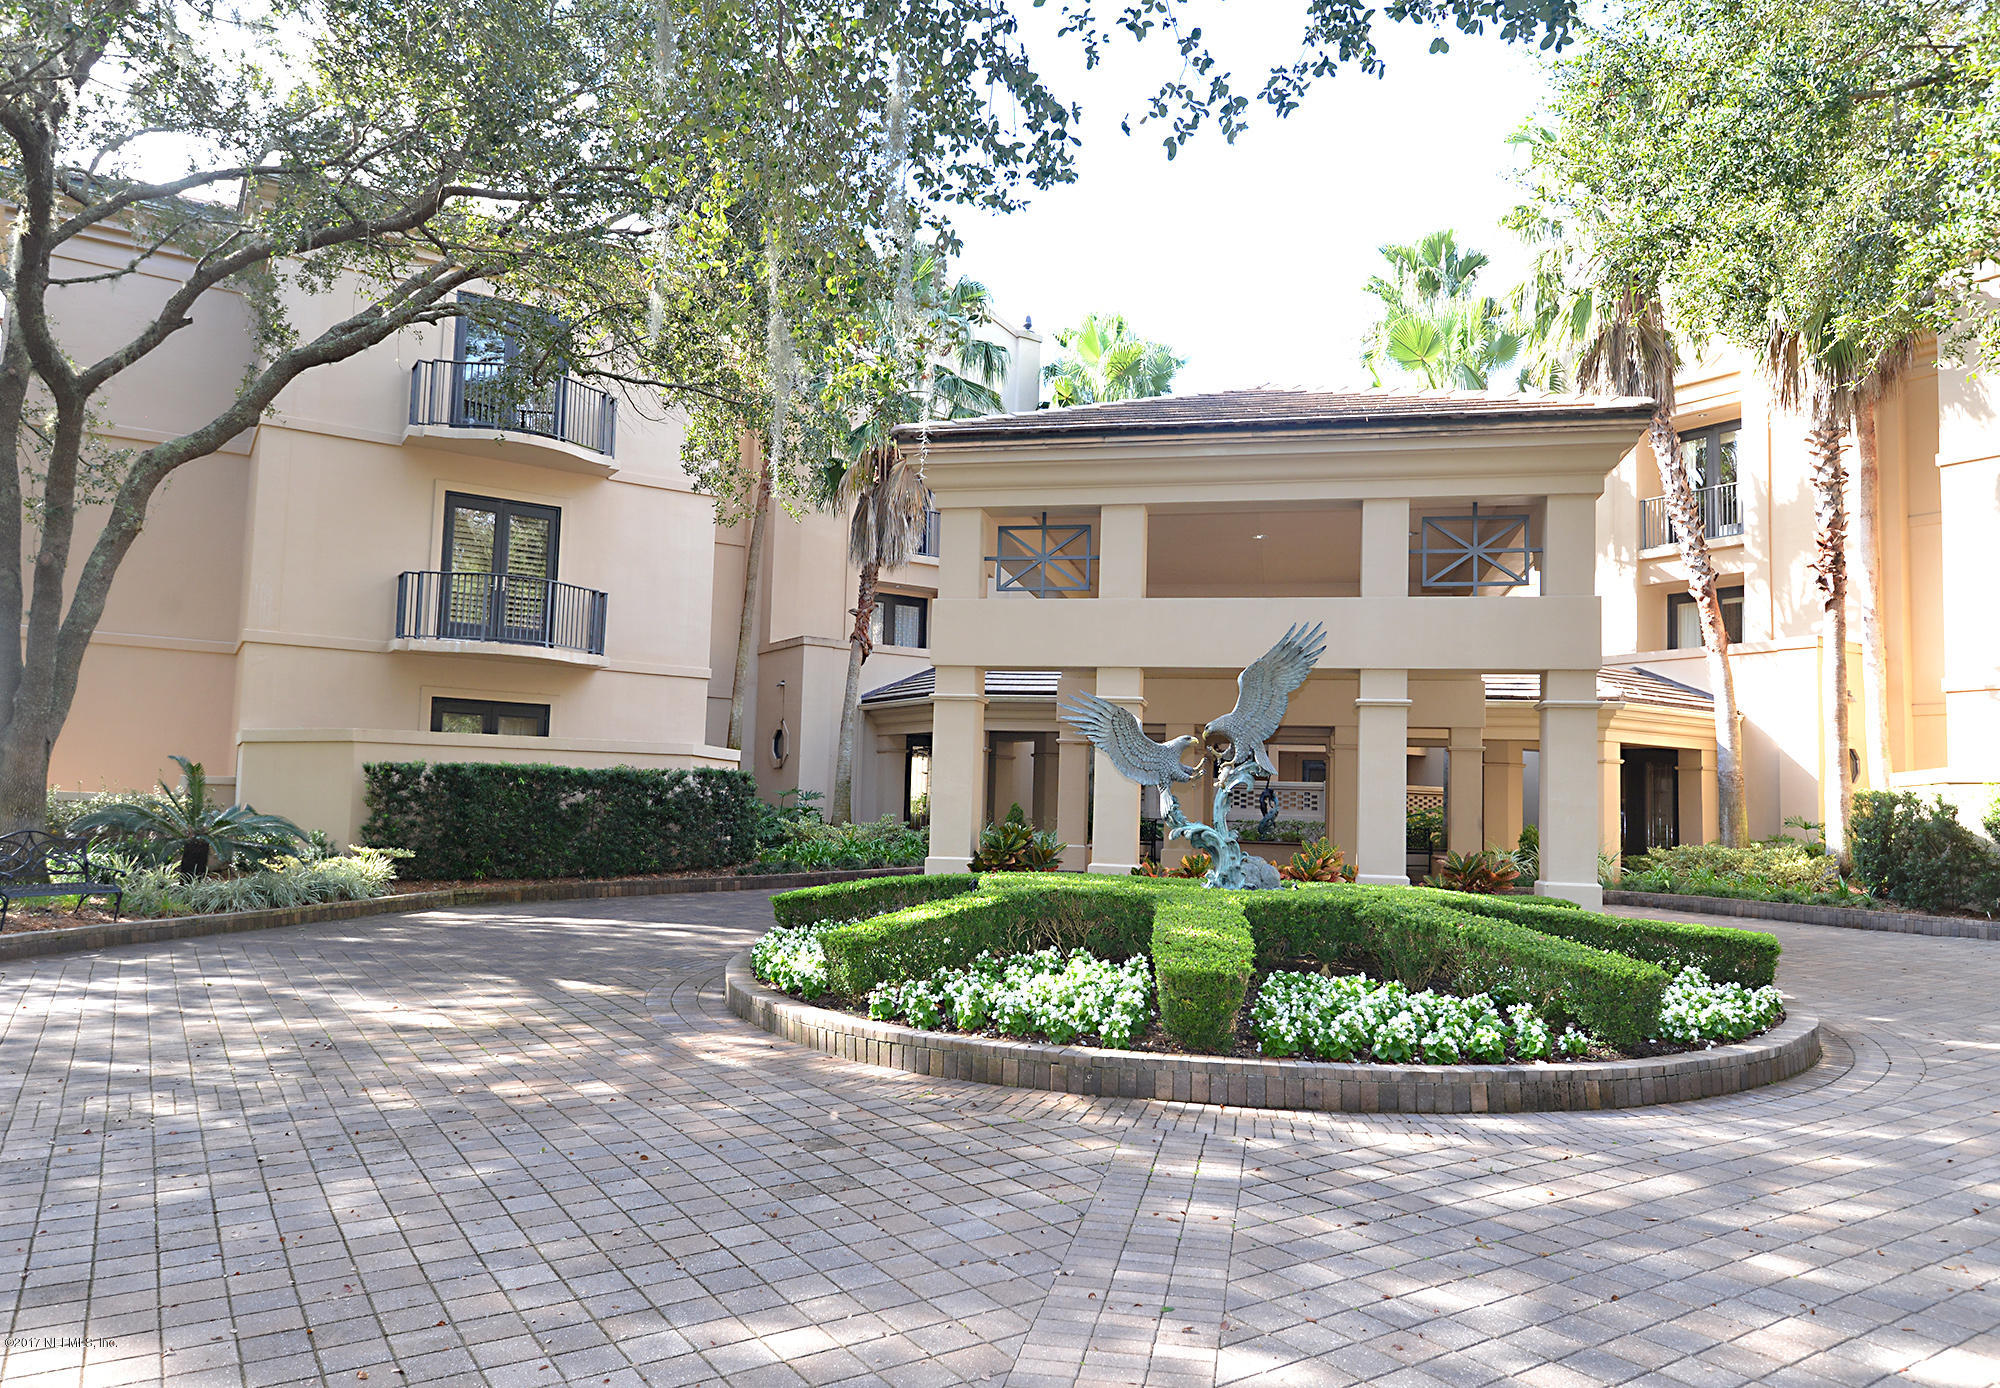 6730 EPPING FOREST, JACKSONVILLE, FLORIDA 32217, 3 Bedrooms Bedrooms, ,4 BathroomsBathrooms,Residential - condos/townhomes,For sale,EPPING FOREST,962437